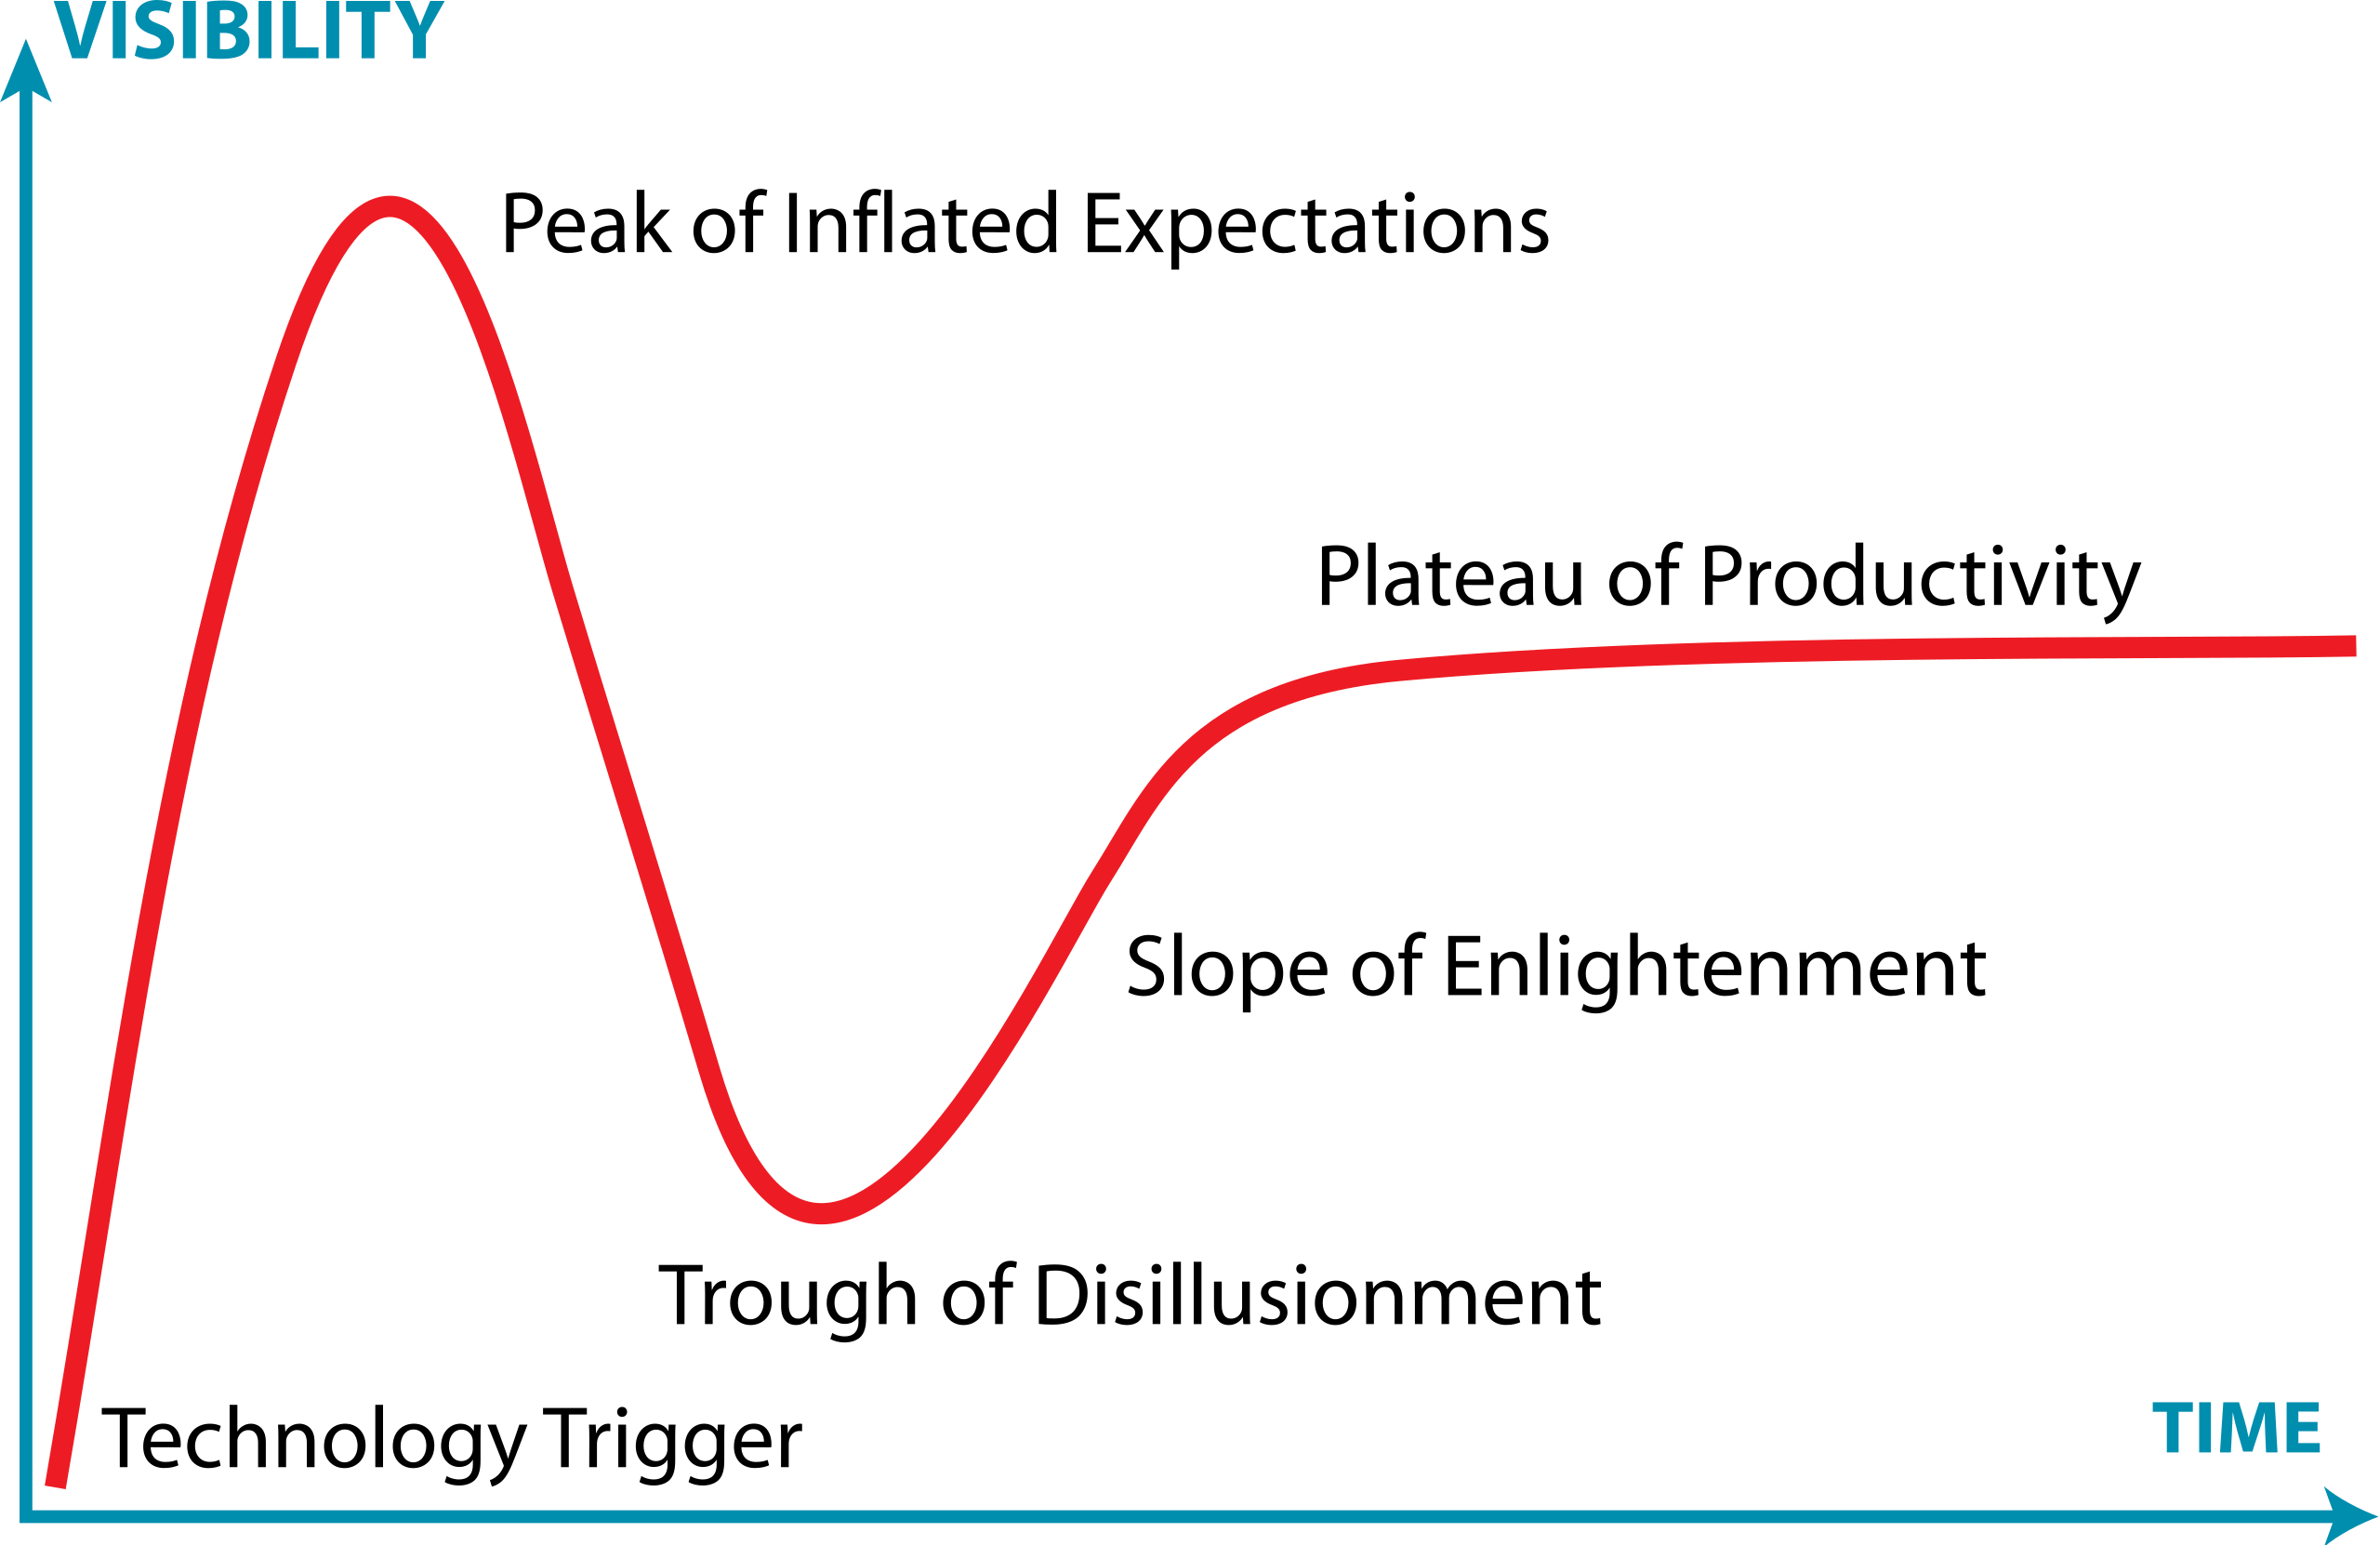 Gartner Hype Cycle visual